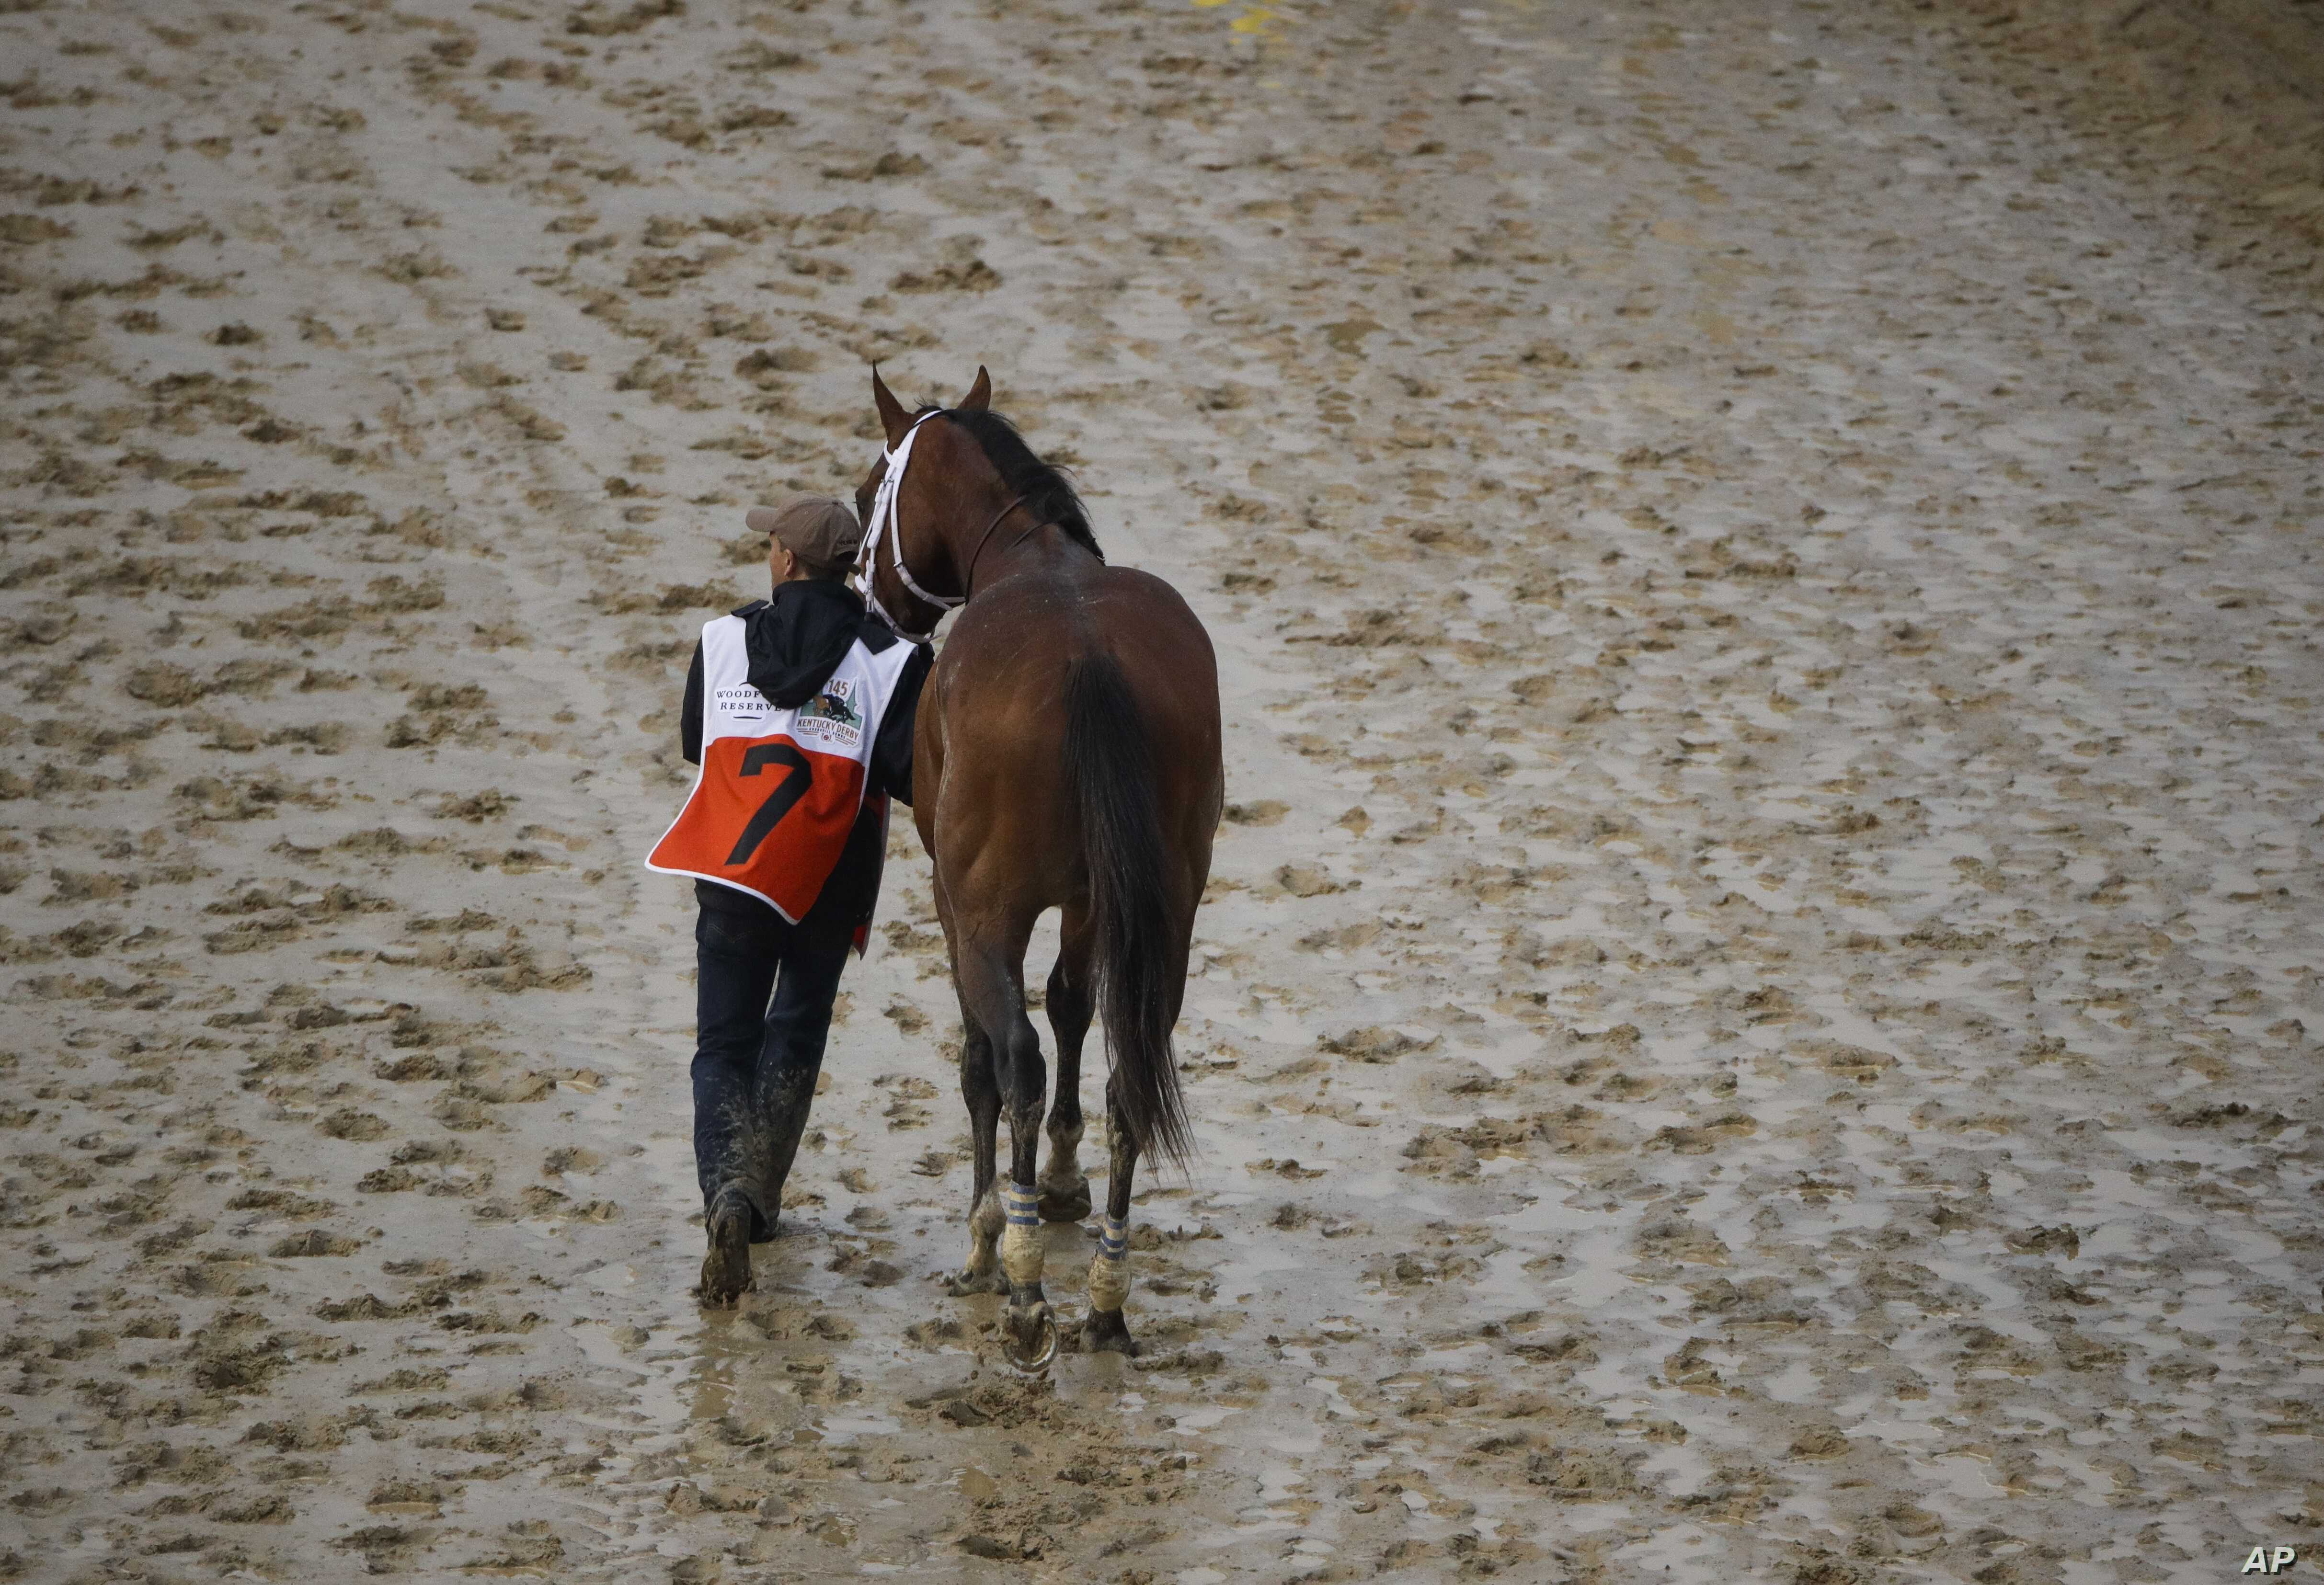 Maximum Security is walked off the track after being disqualified in the 145th running of the Kentucky Derby horse race at Churchill Downs, May 4, 2019, in Louisville, Ky.